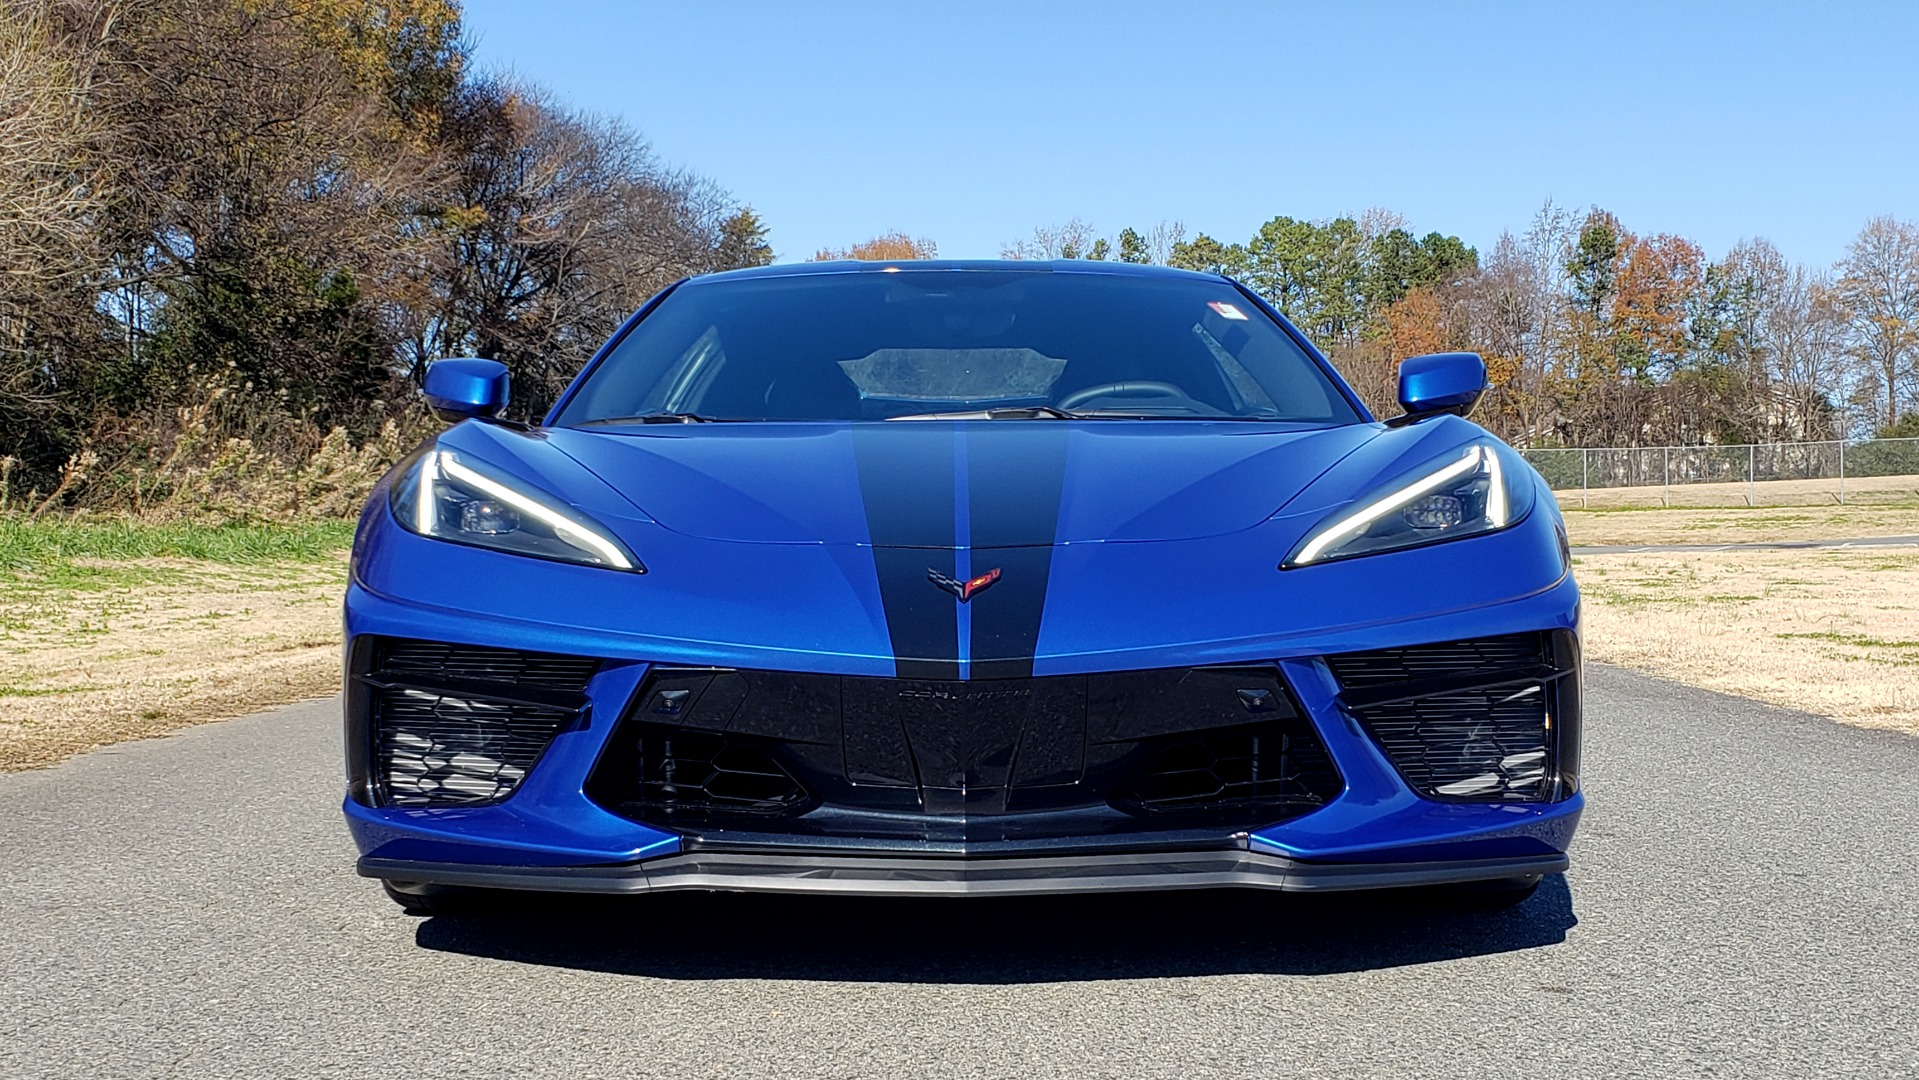 Used 2020 Chevrolet C8 CORVETTE STINGRAY 2LT COUPE / NAV / HUD / BOSE / GT2 SEATS / FRONT LIFT / REARVIEW for sale Sold at Formula Imports in Charlotte NC 28227 32